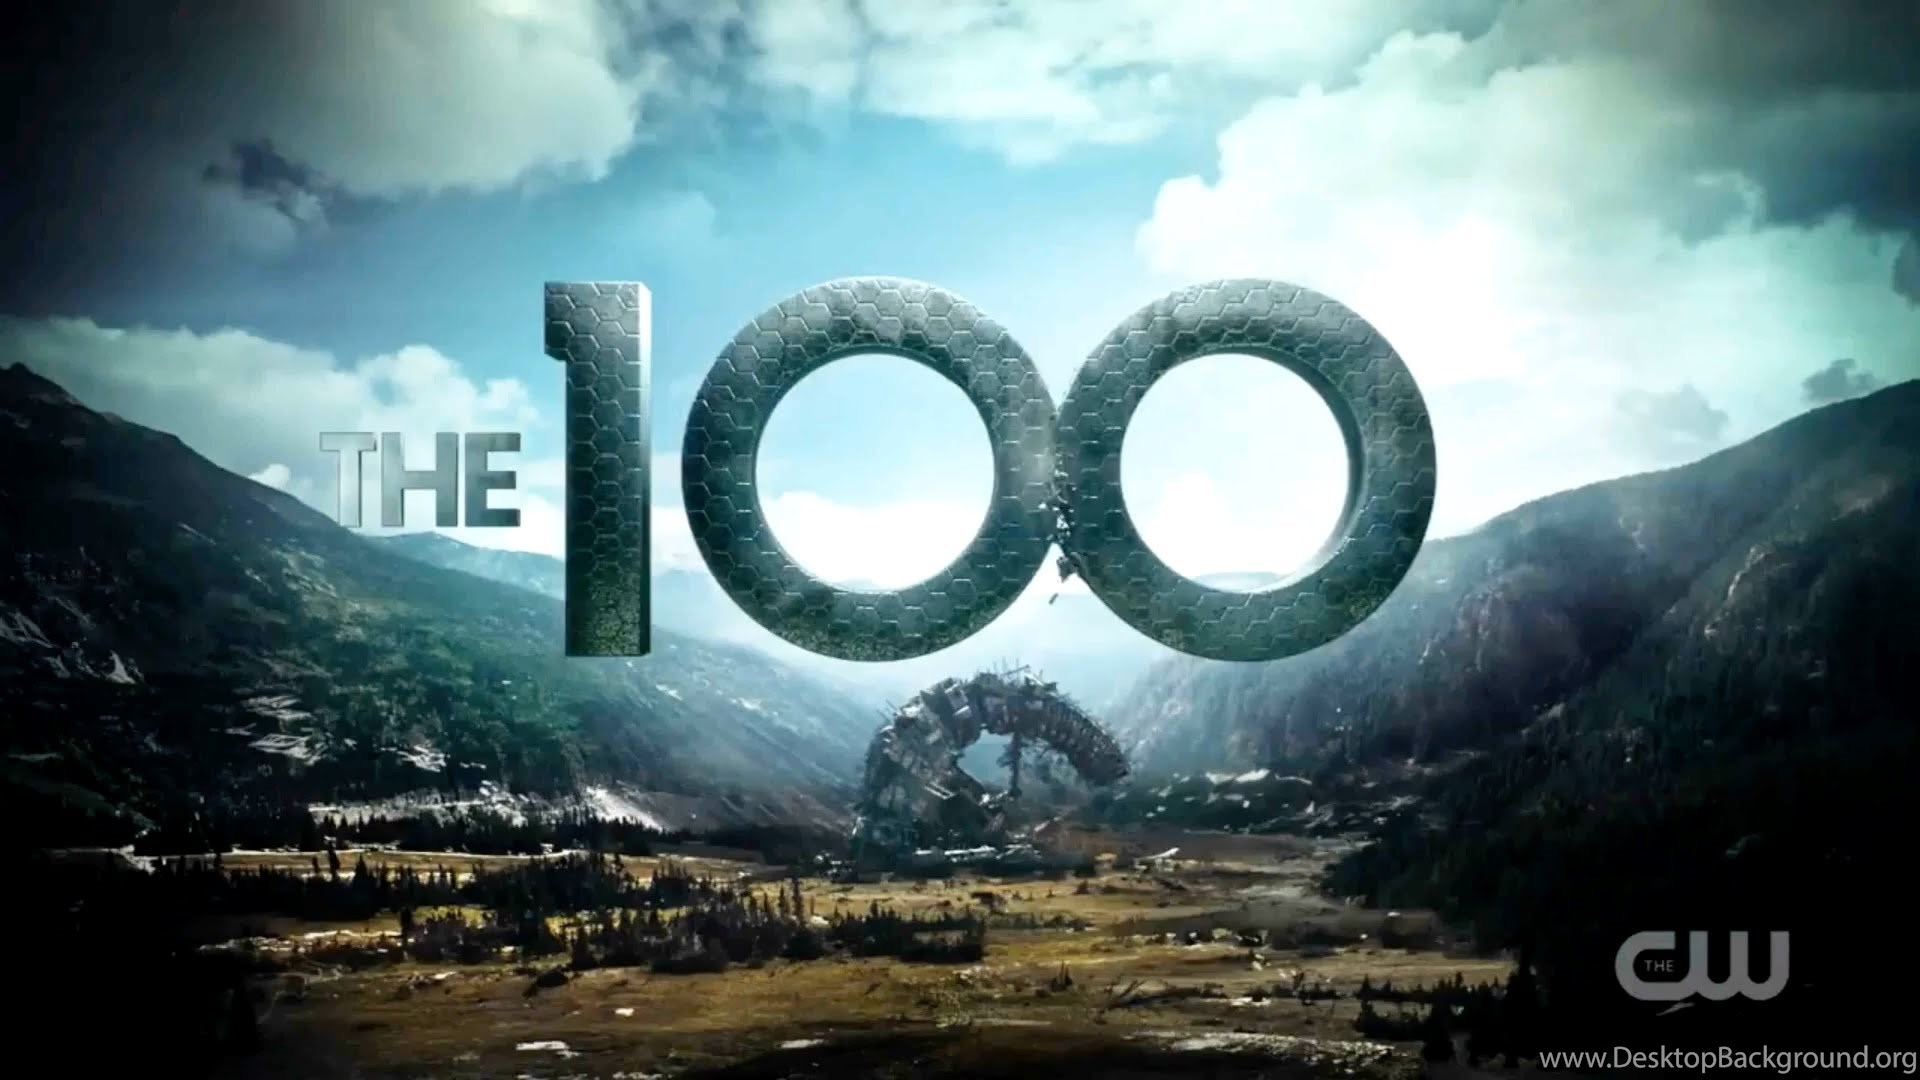 The Gallery For The 100 Season 2 Wallpapers Desktop Background